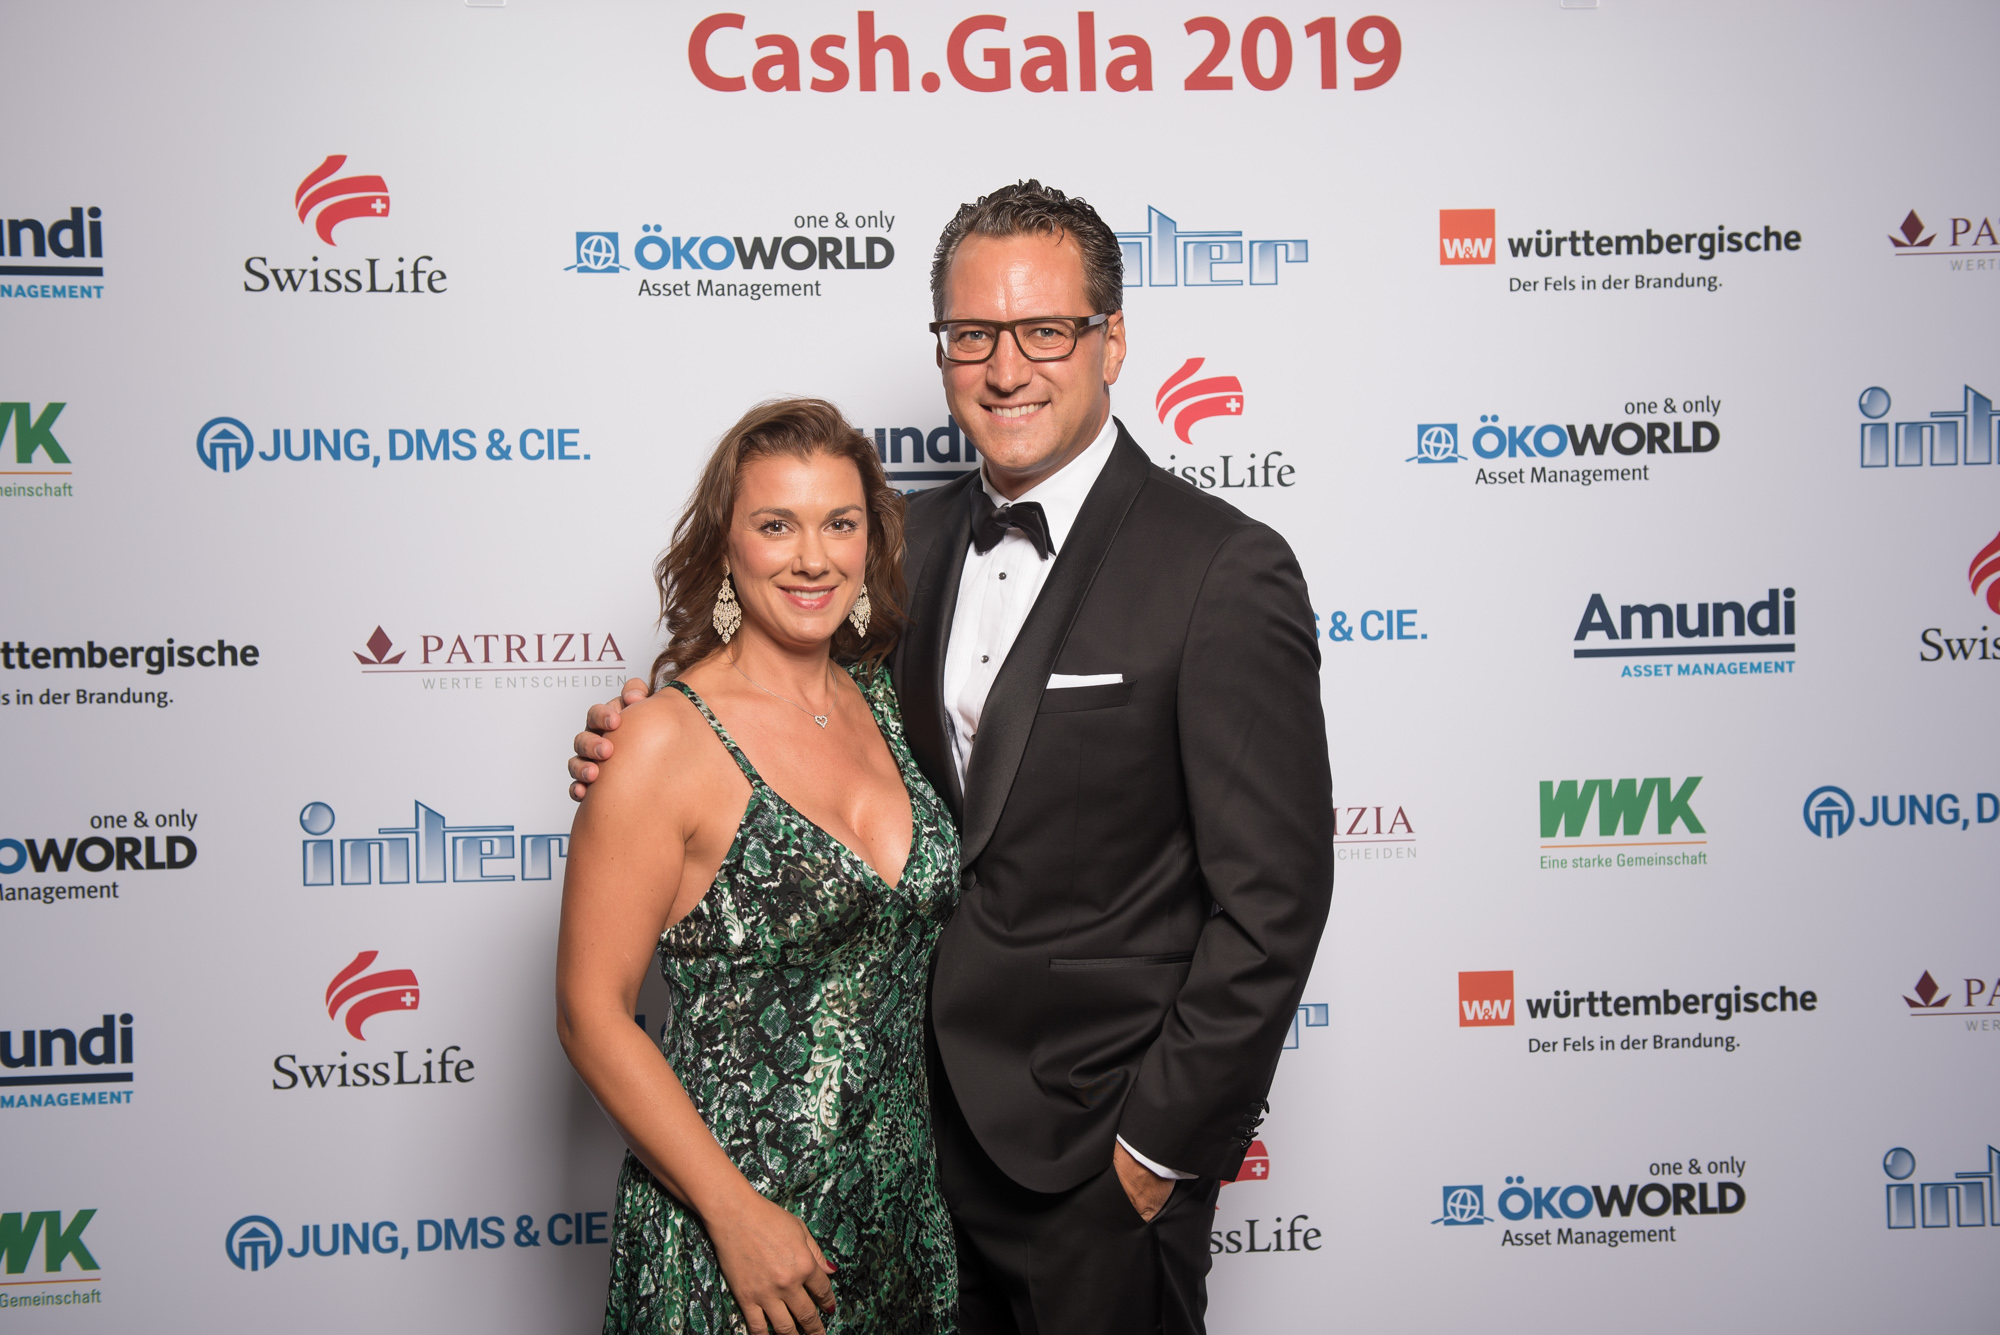 CashGala 2019 0022 AM DSC7006 in Cash.Gala 2019